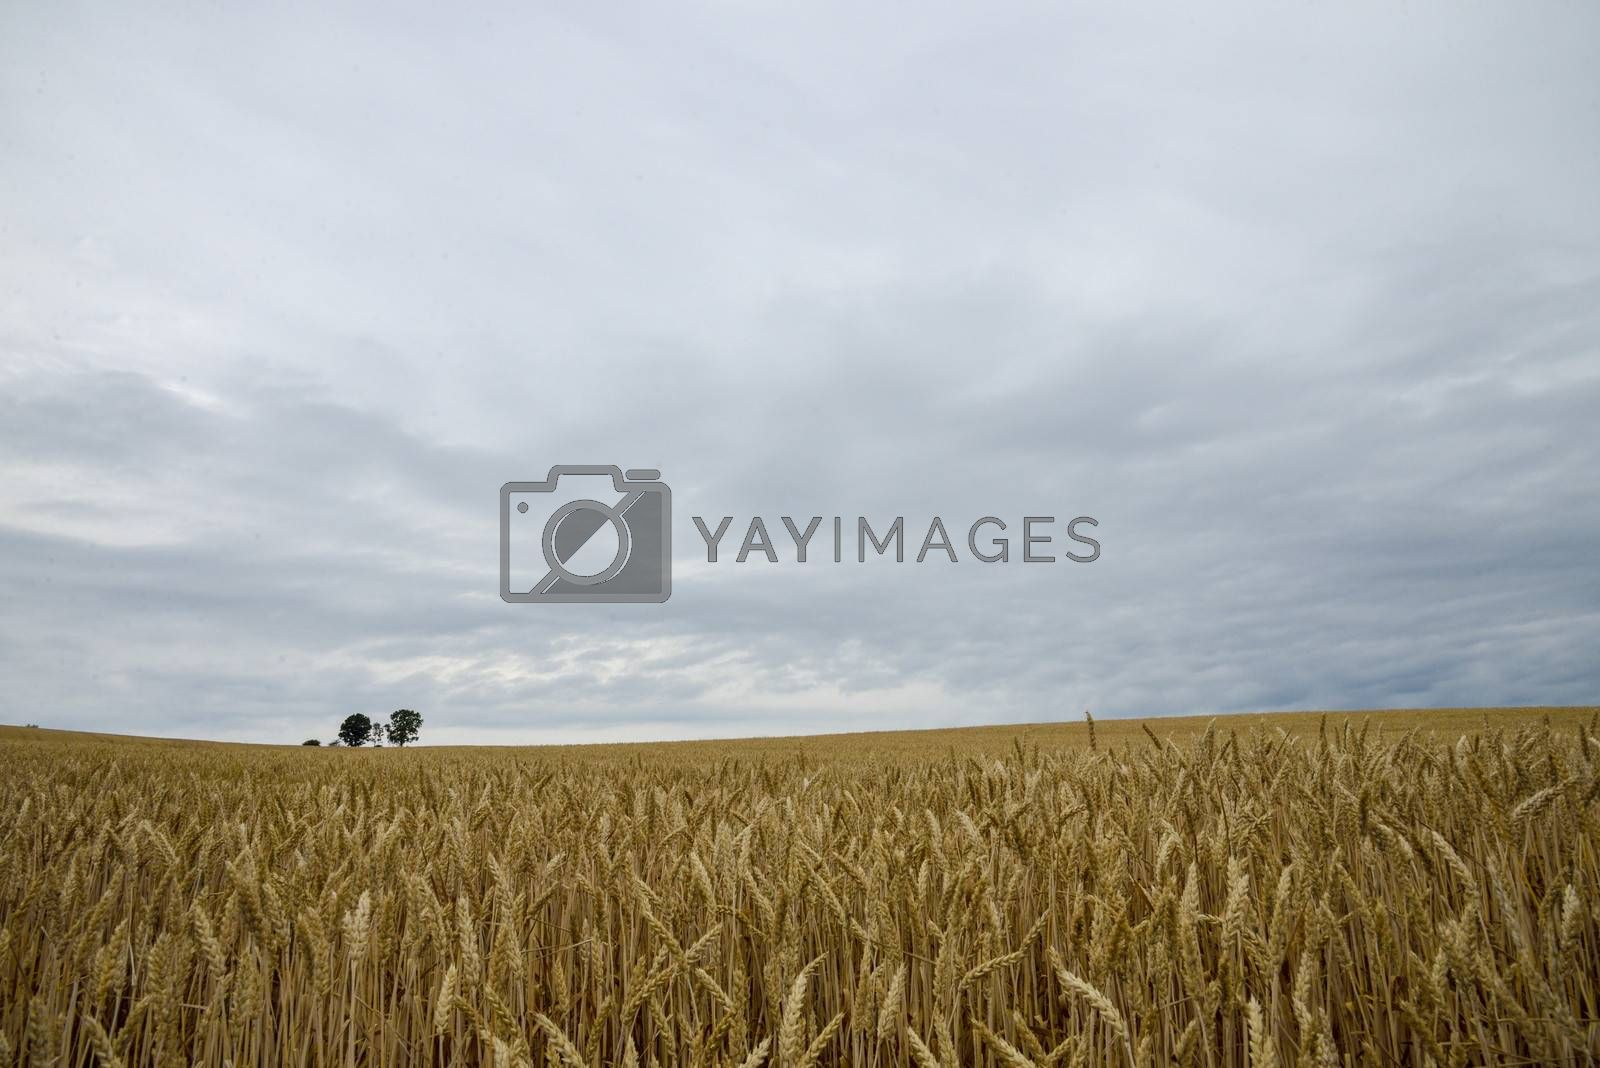 Parents and child tree in barley field7